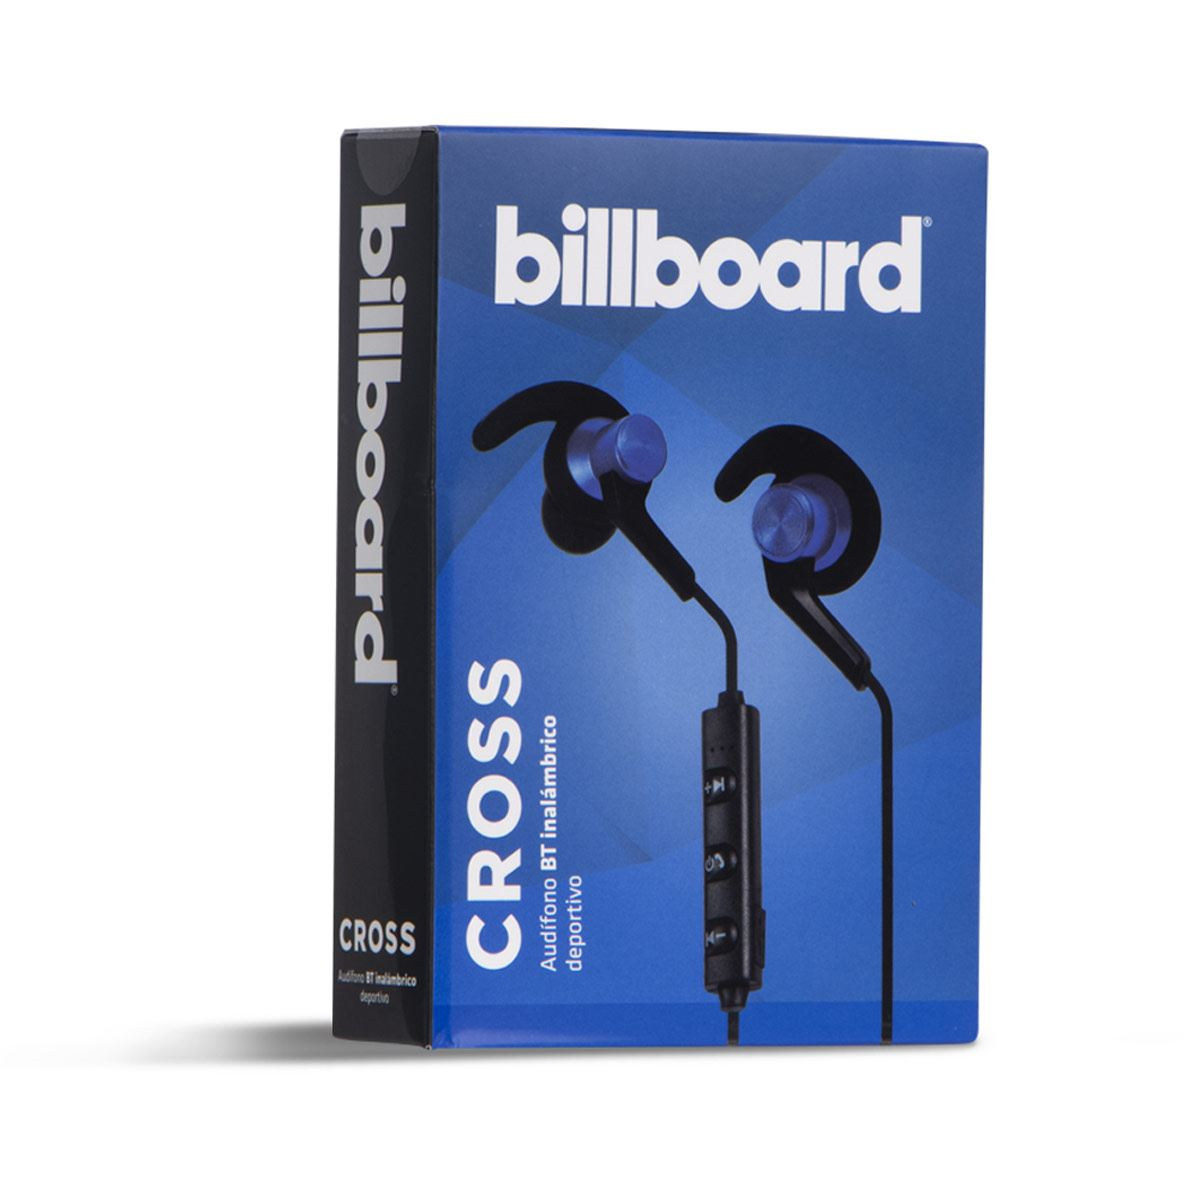 Audífonos Billboard Cross Bluetooth Azul